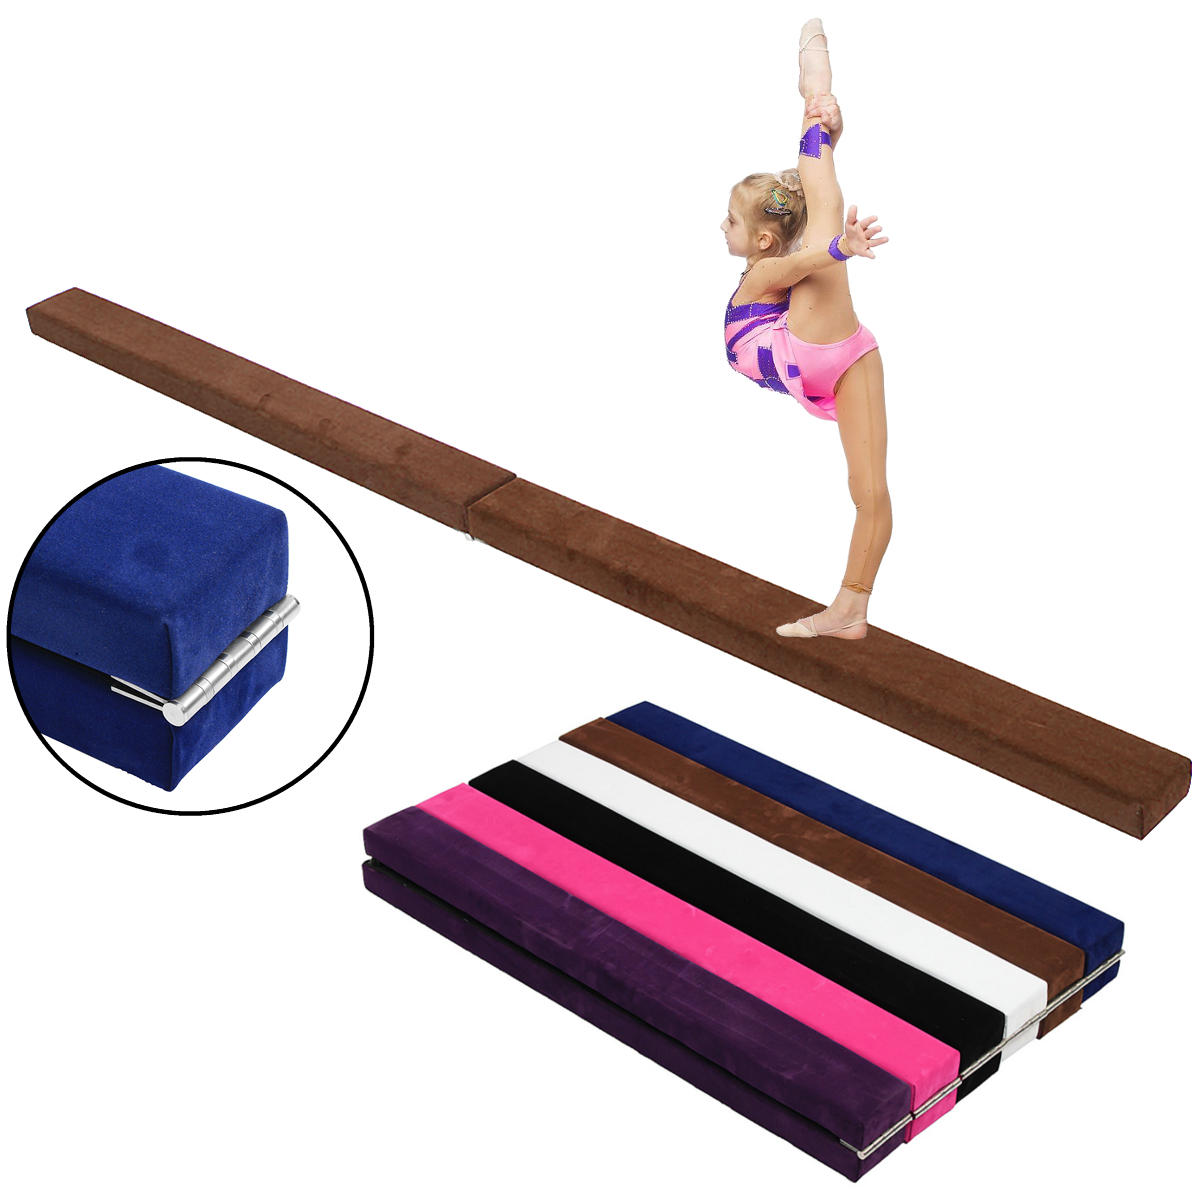 All about gymnastics airtrack